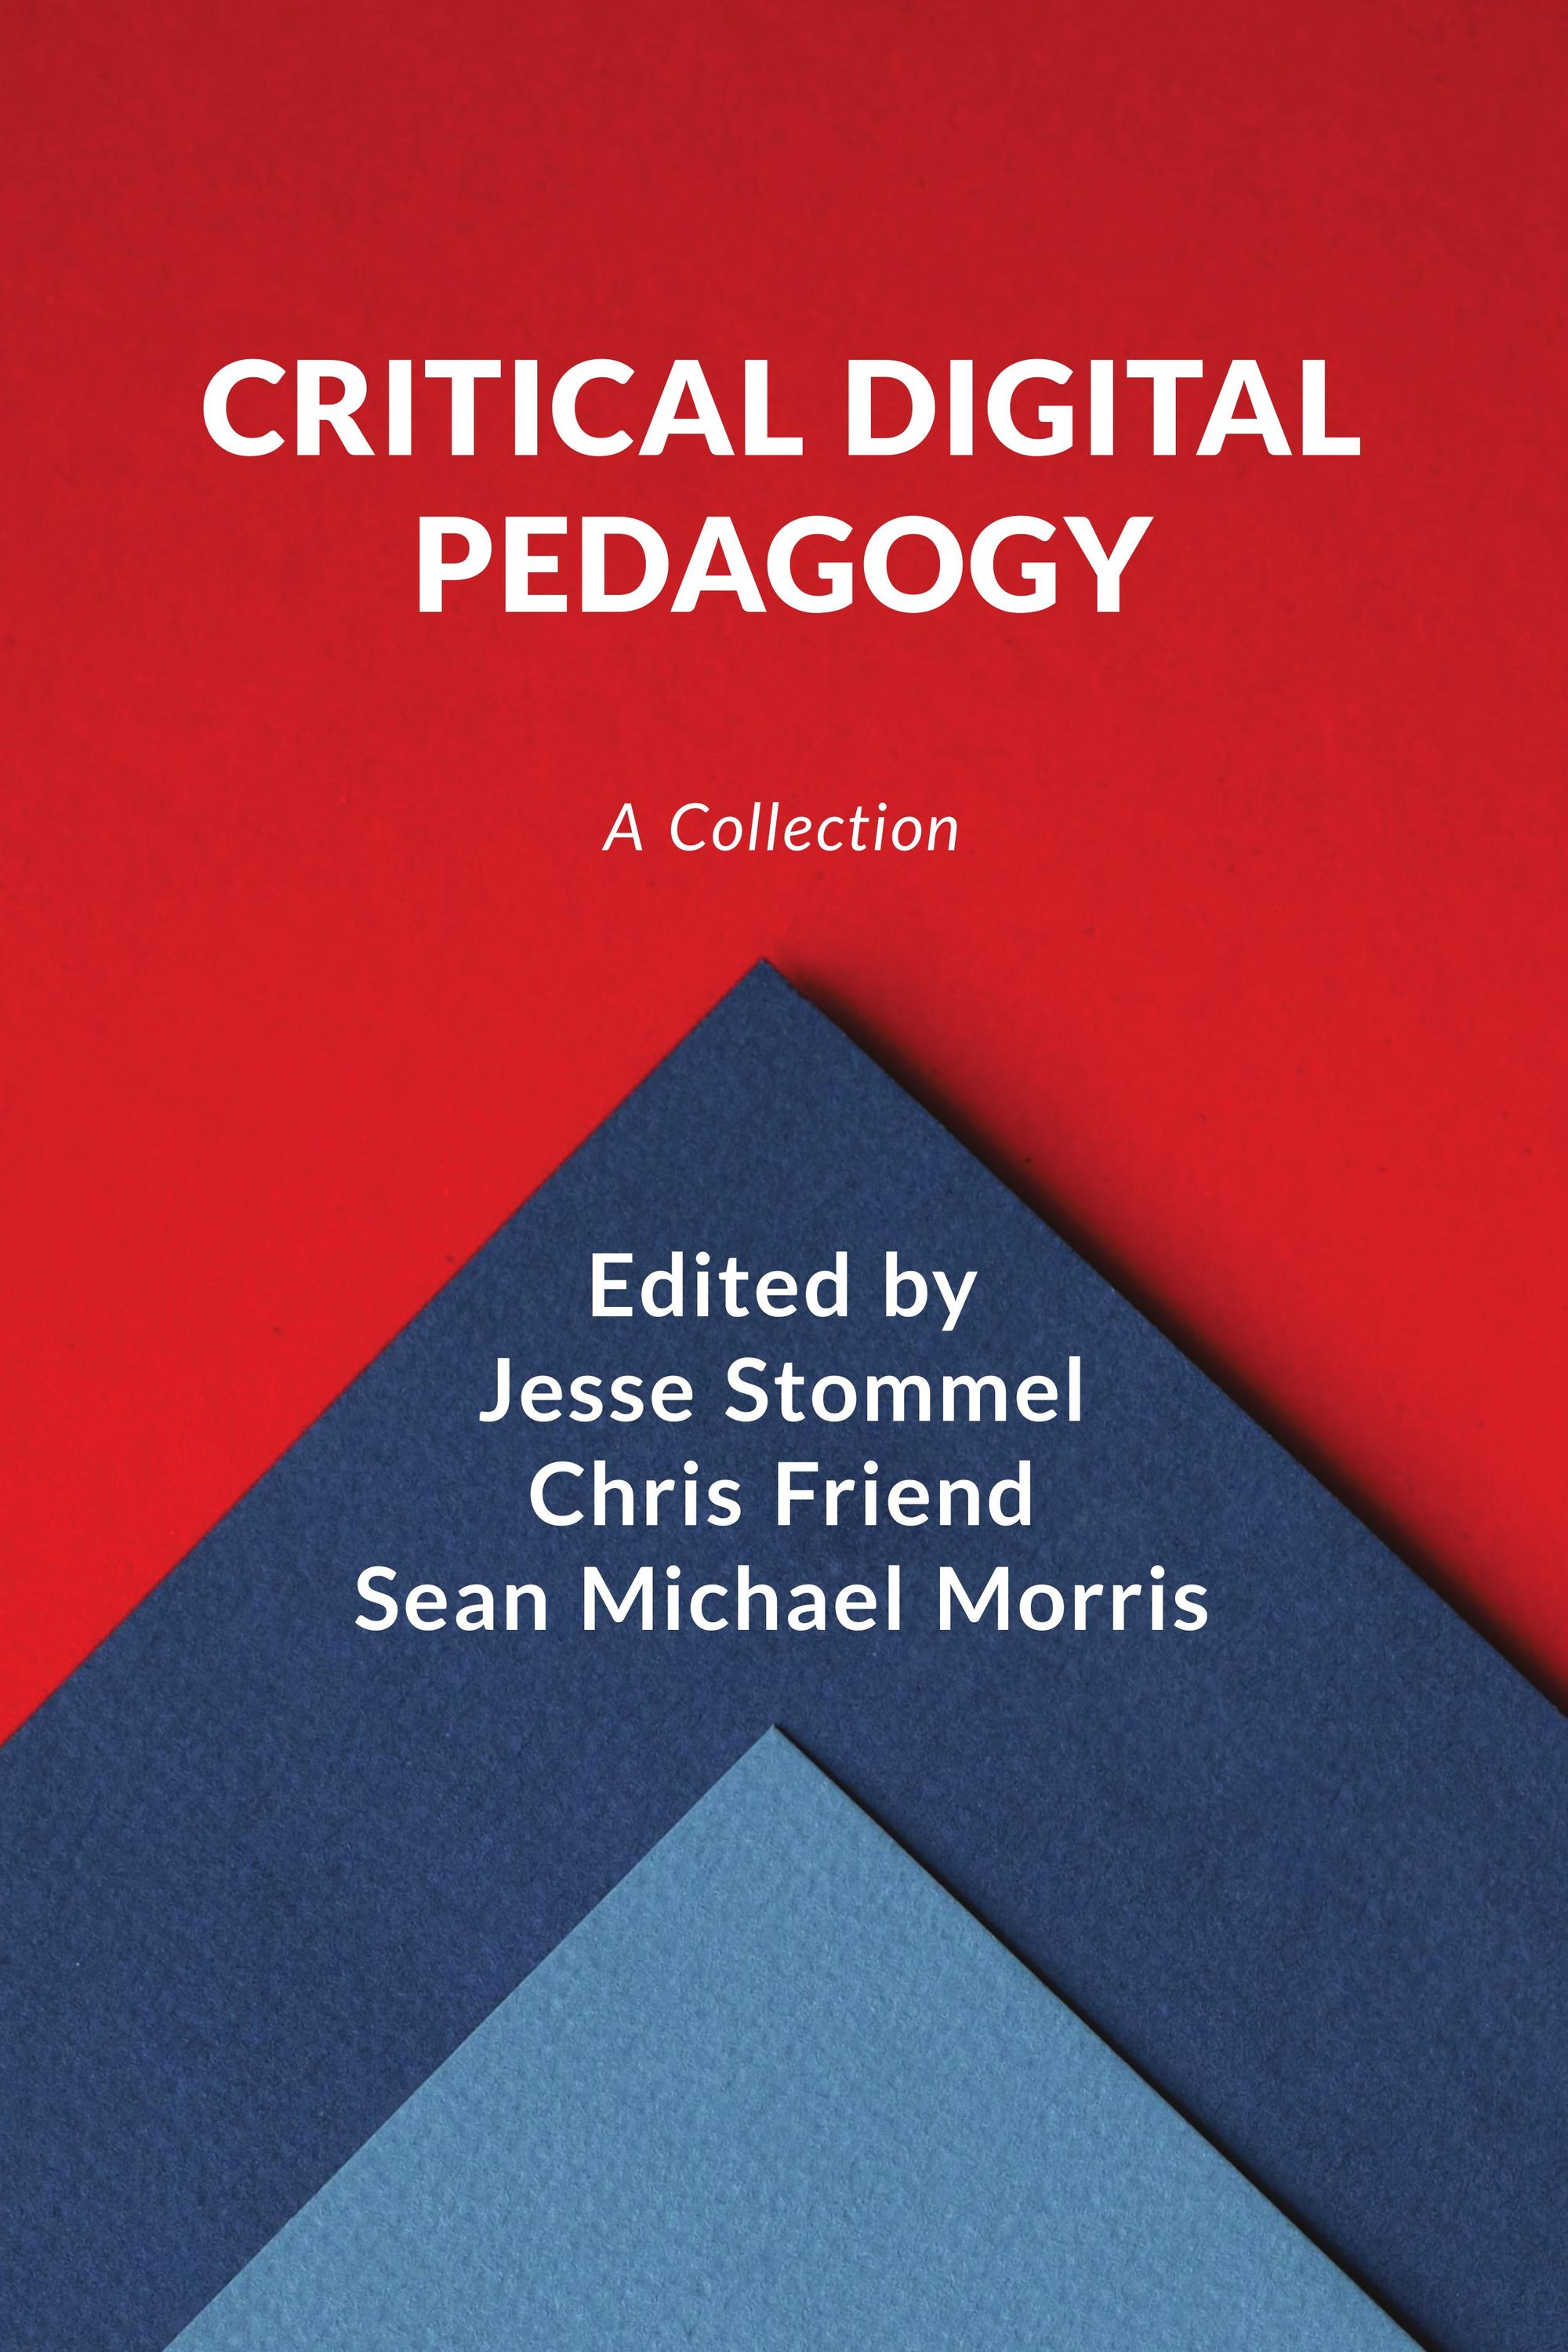 The cover of Critical Digital Pedagogy: A Collection, multi-colored paper in red and blues with white text over top.